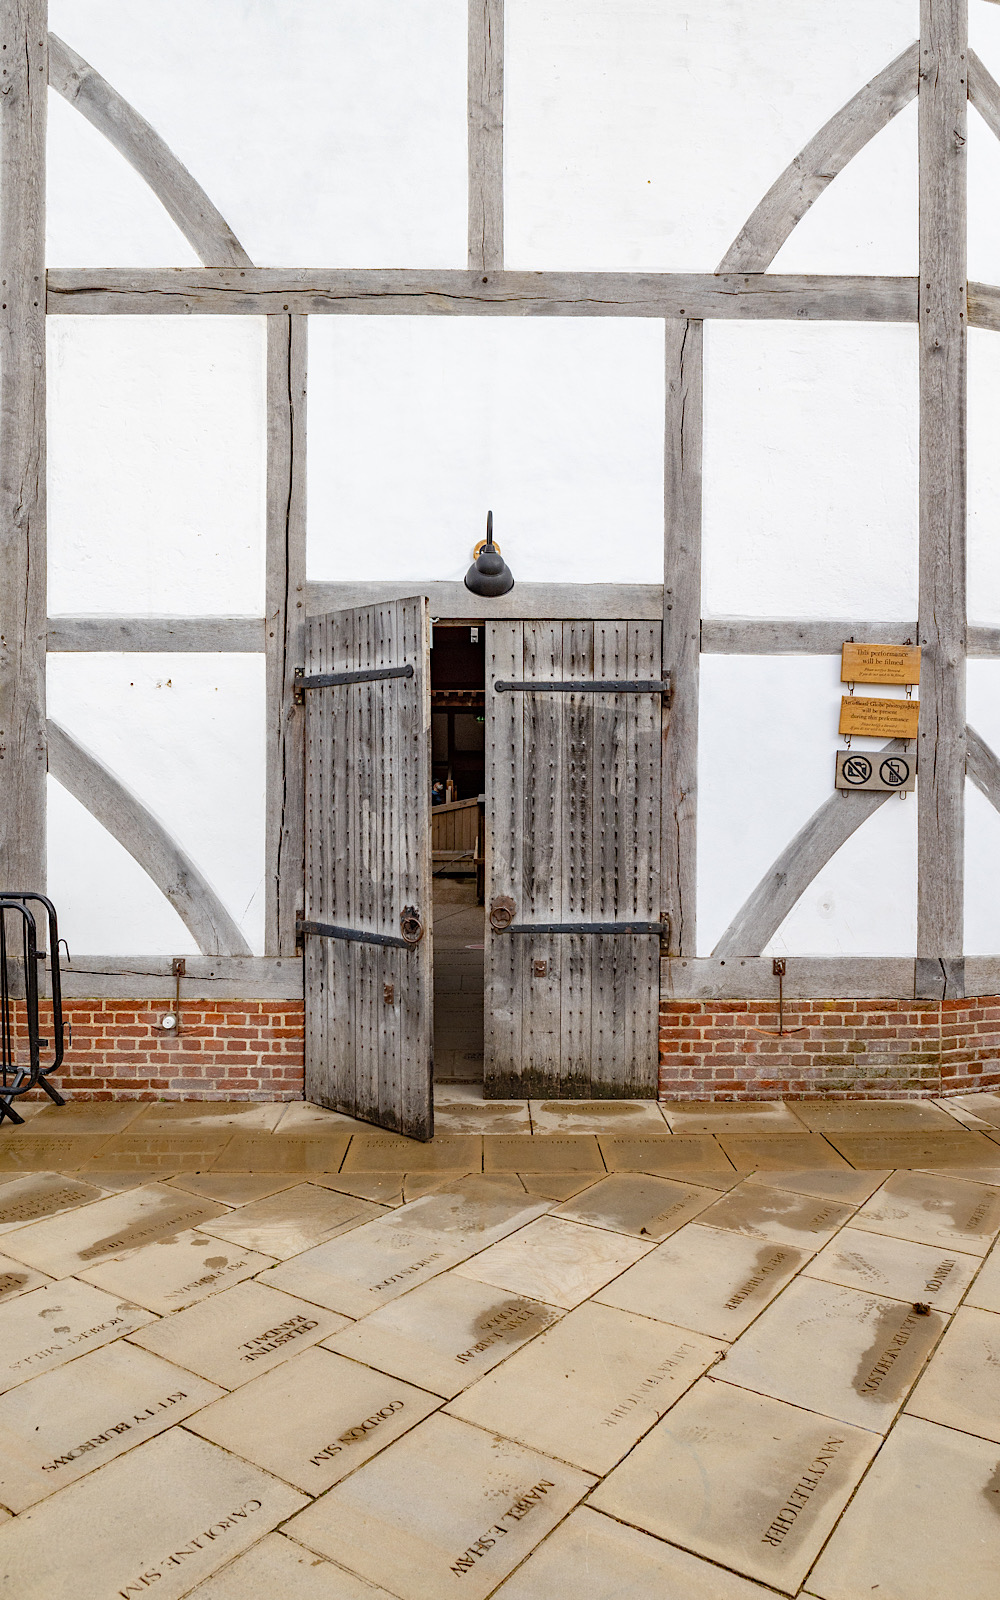 Within a white, wooden-beamed wall, a wooden pair of doors are open